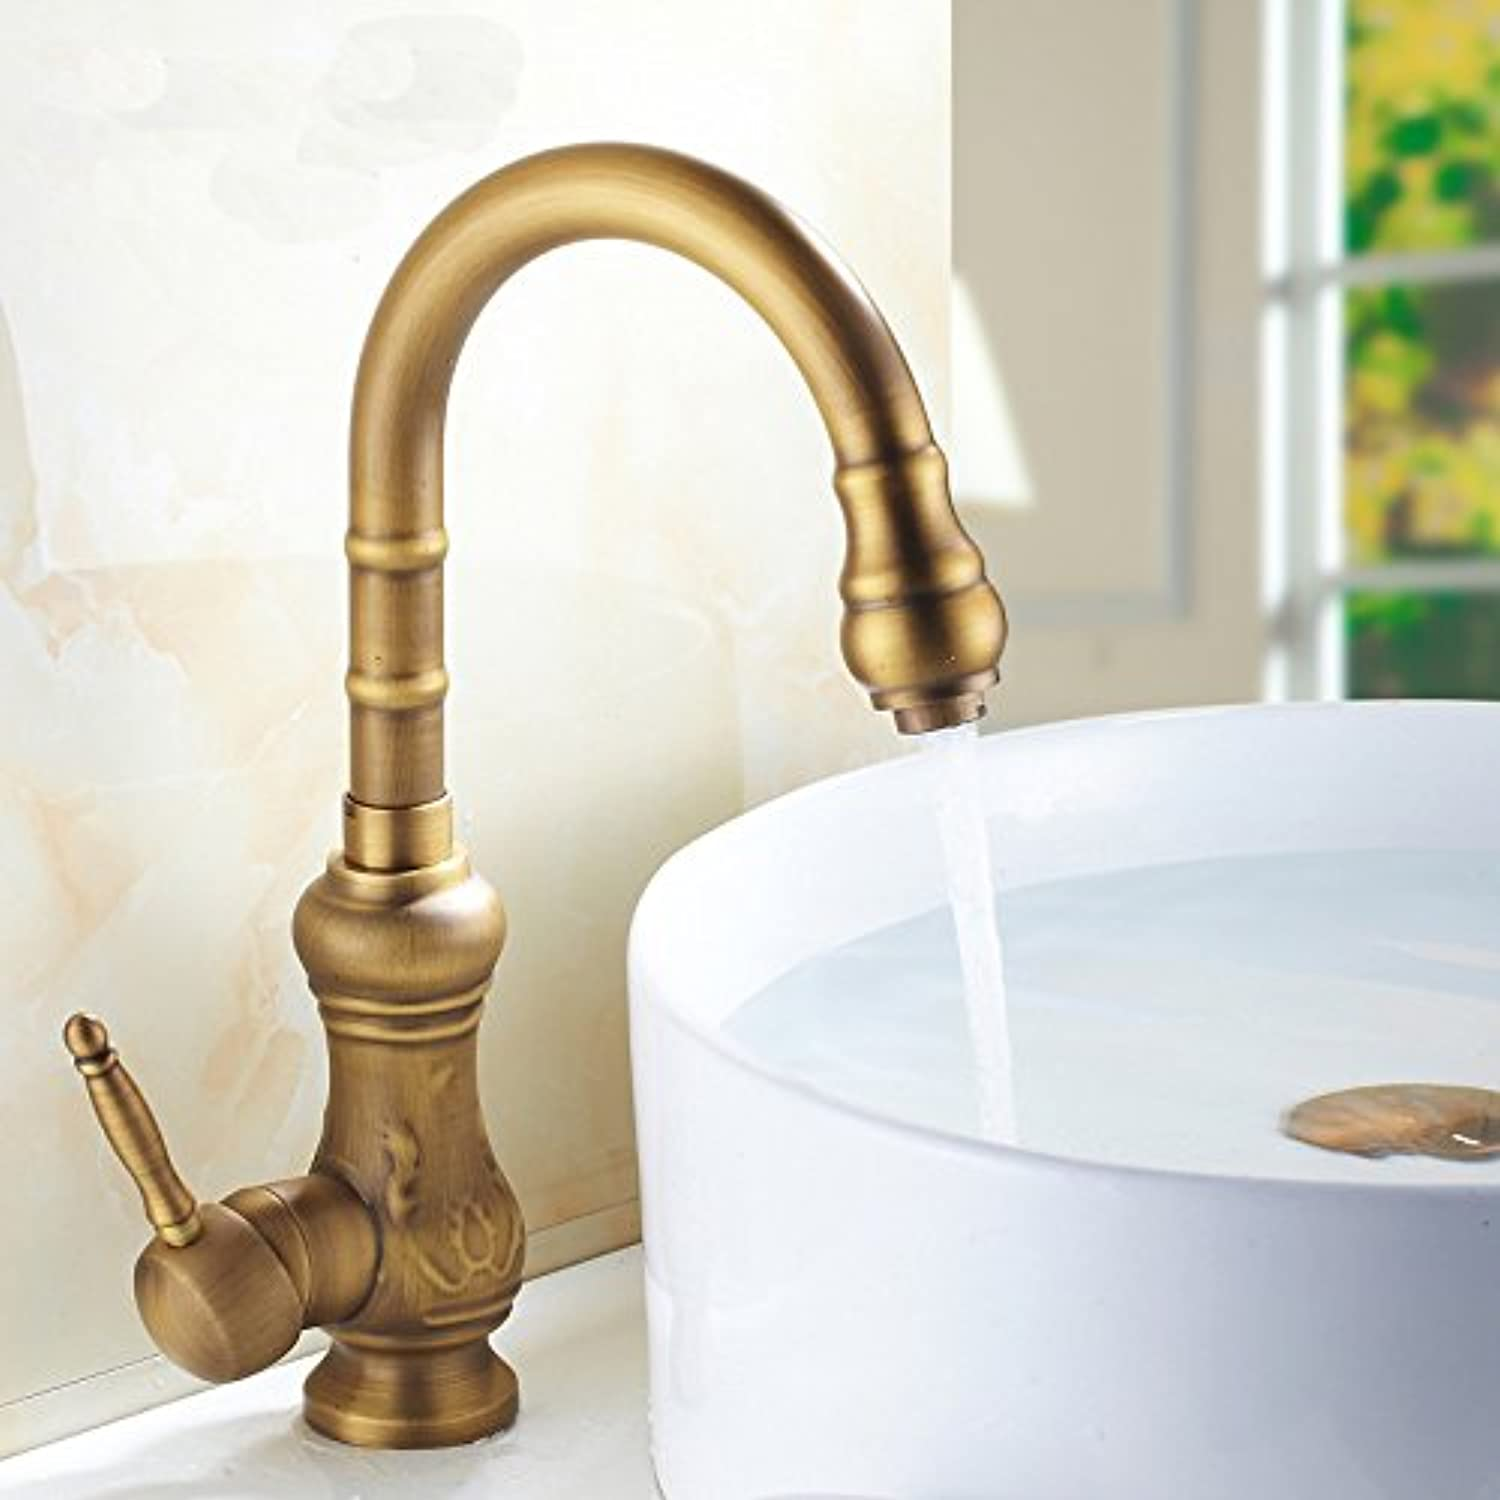 Commercial Single Lever Pull Down Kitchen Sink Faucet Brass Constructed Polished European Antique Faucet European Antique Faucet Kitchen Sink Basin Faucet Hot and Cold redation